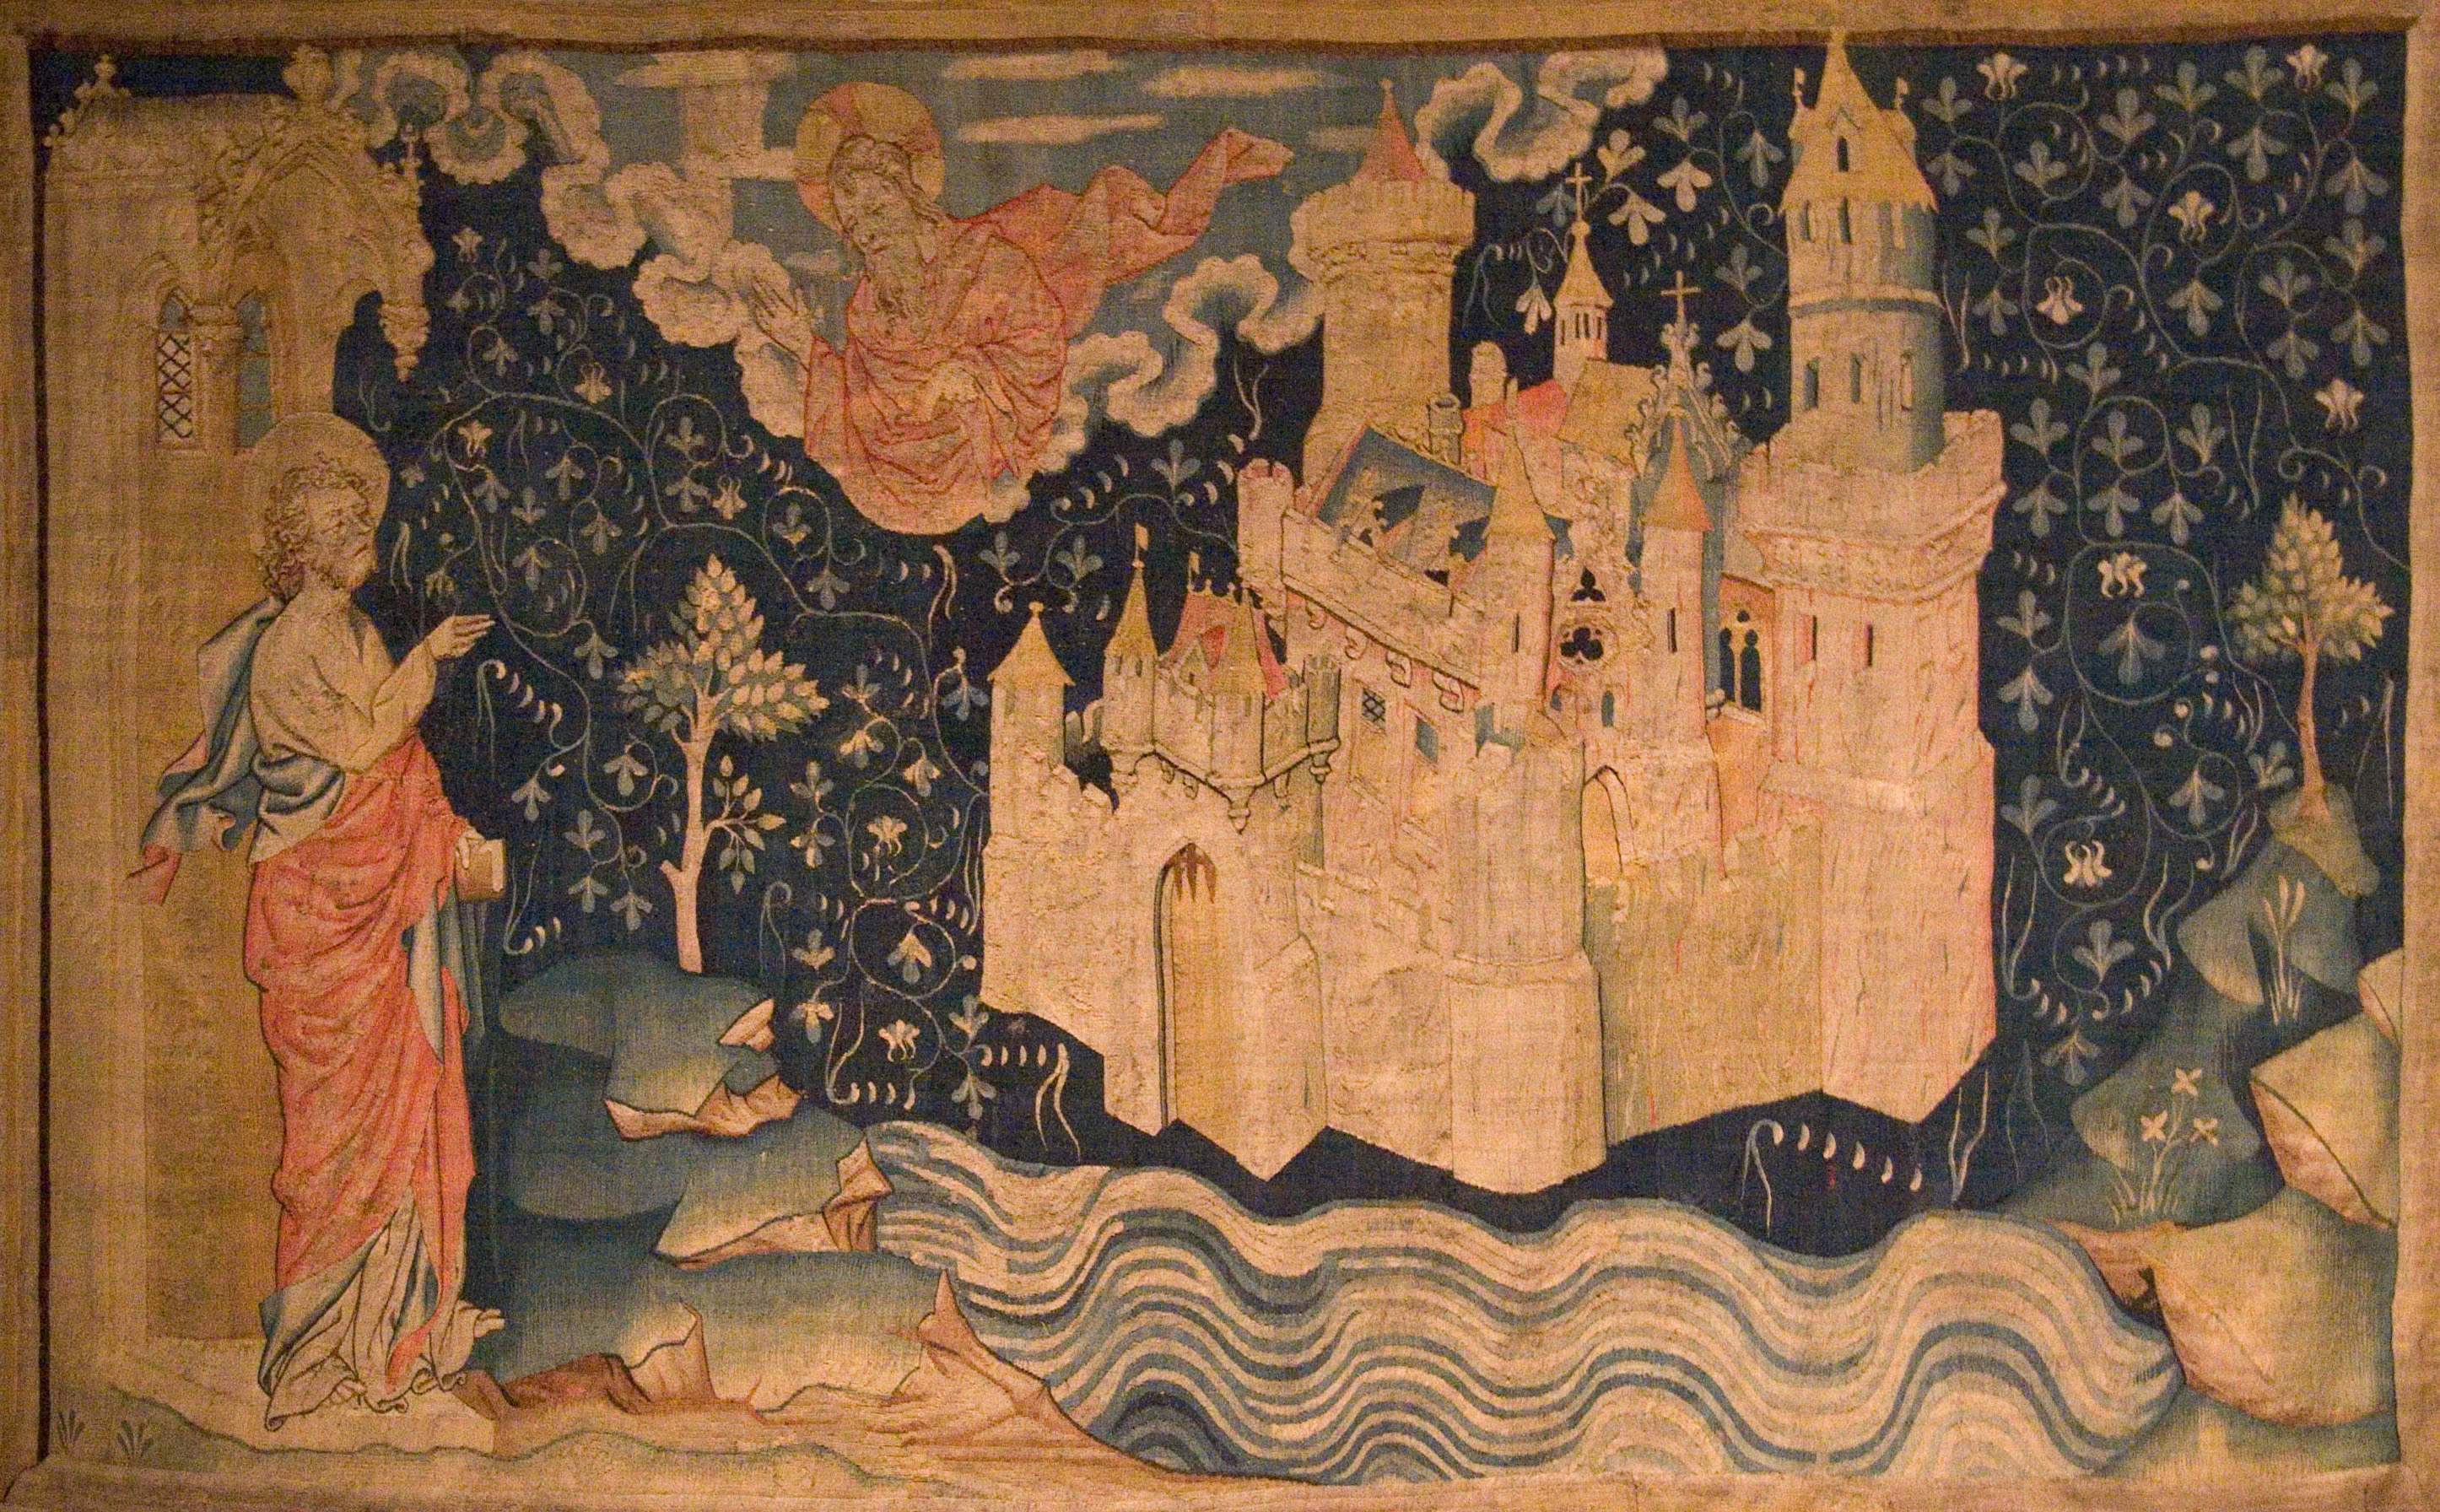 John of Patmos watches the descent of the New Jerusalem from God in a 14th-century tapestry.